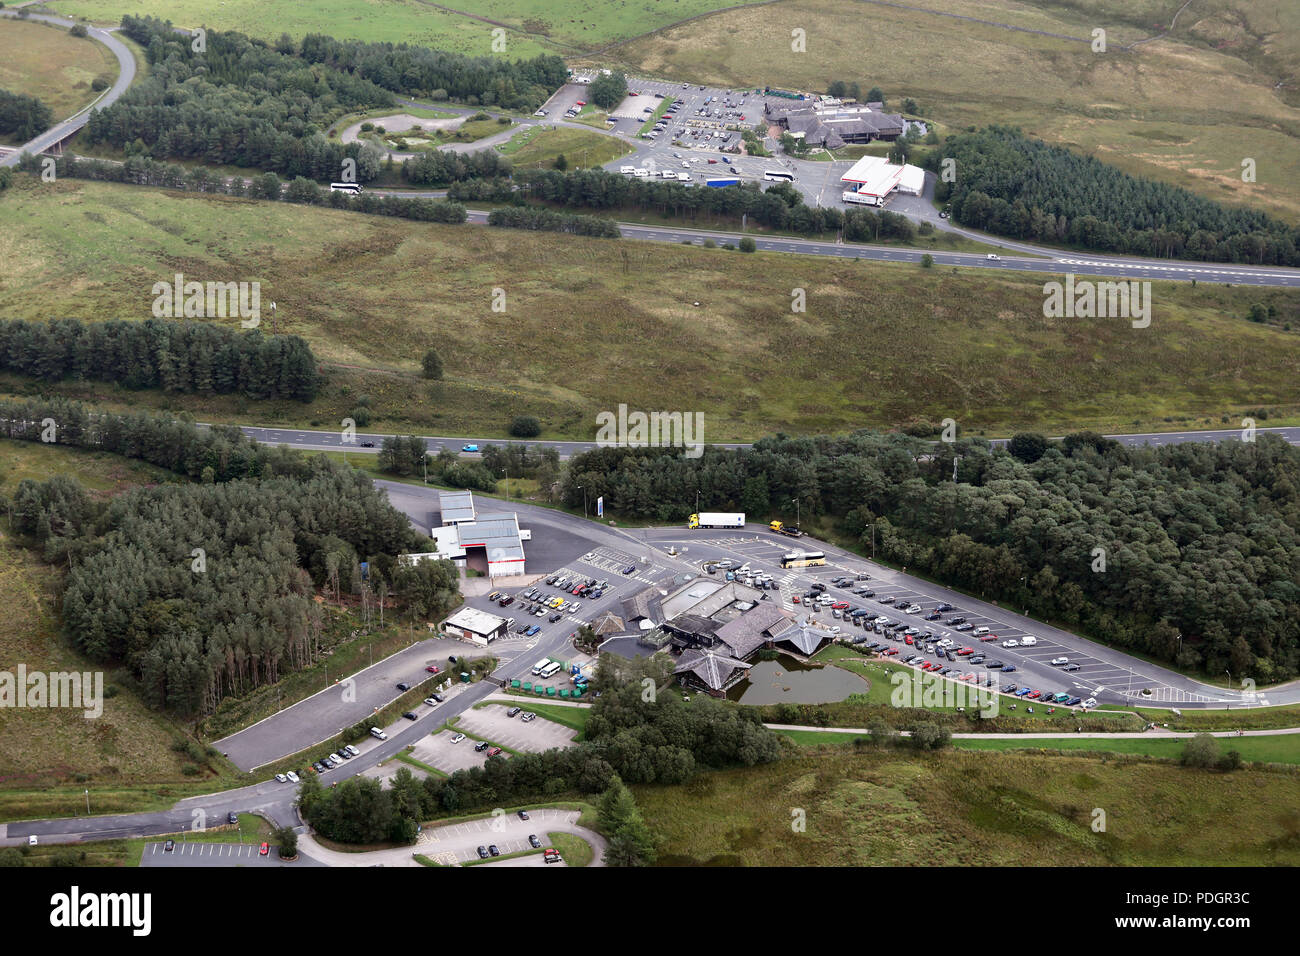 aerial view of Tebay Services Southbound and also Tebay Services Northbound (foreground) on the M6 Motorway, Cumbria - Stock Image